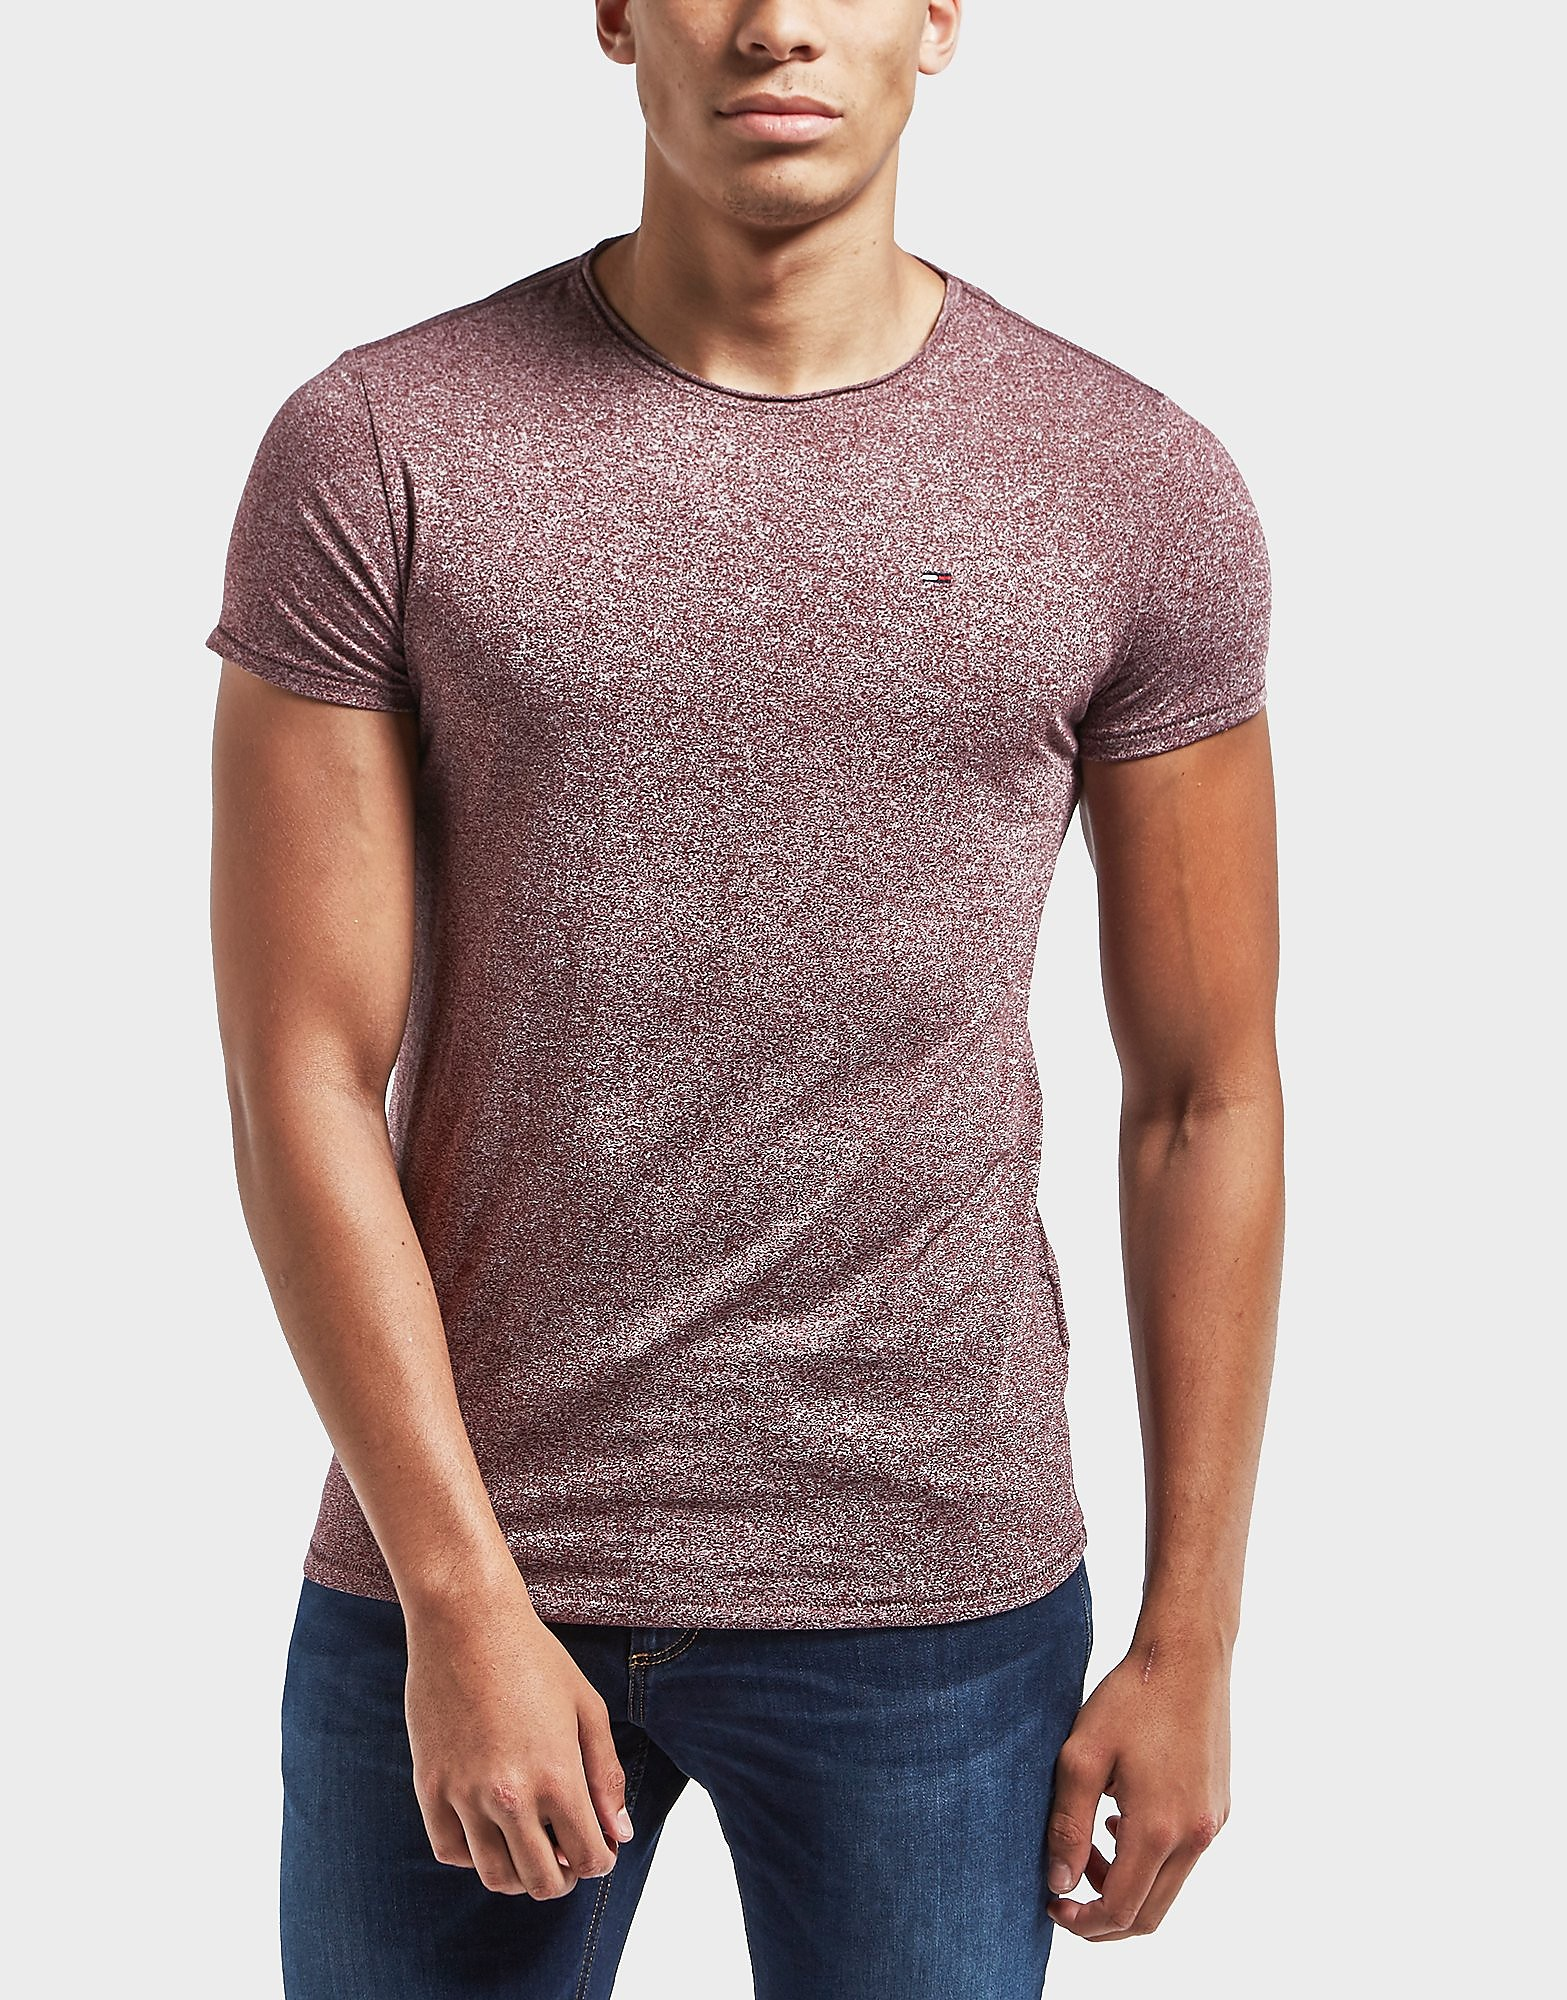 Tommy Hilfiger Jasper Short Sleeve T-Shirt